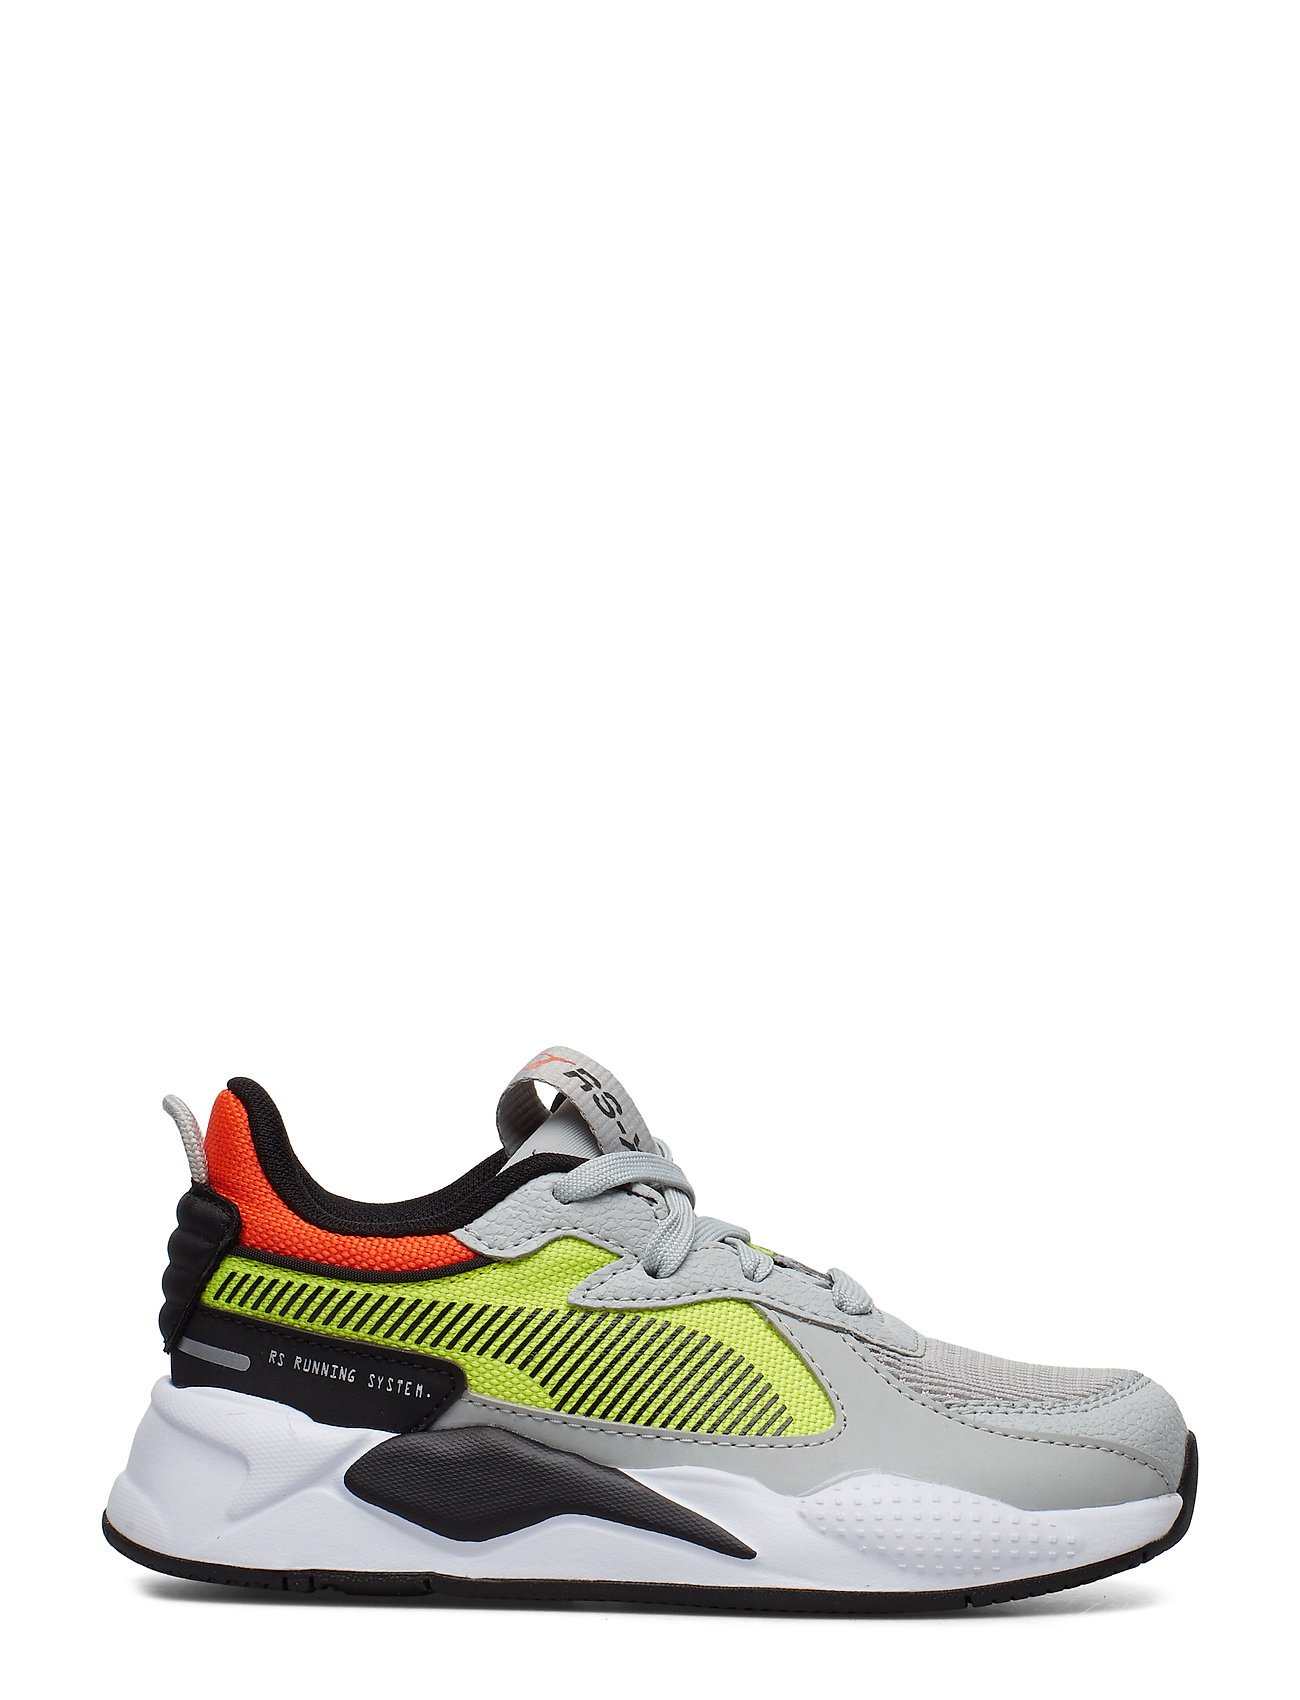 Puma Sportd Shoes: Buy Sports Shoes Online at Best Prices